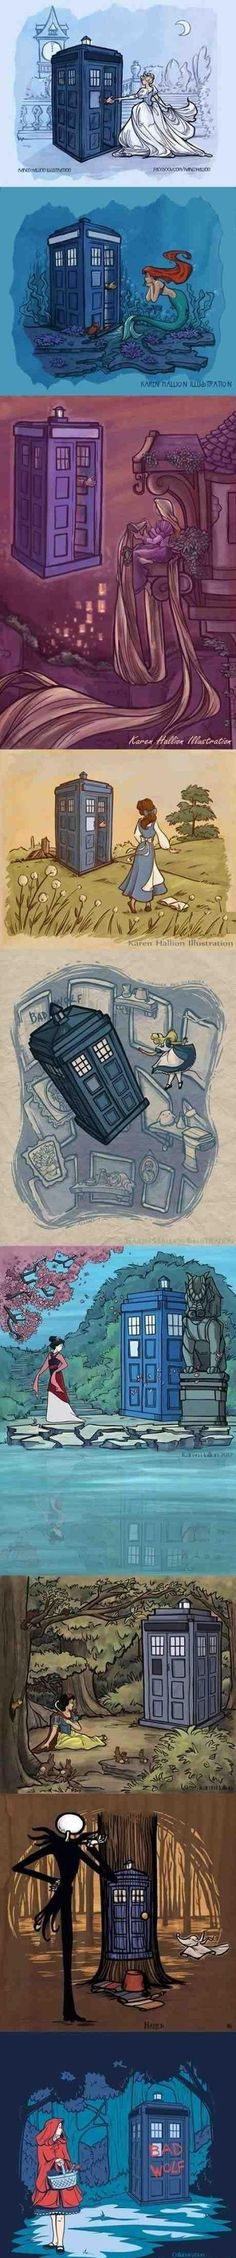 Doctor Who fairy tales | there's actually a book about this. Got the 3 Little Sontarans